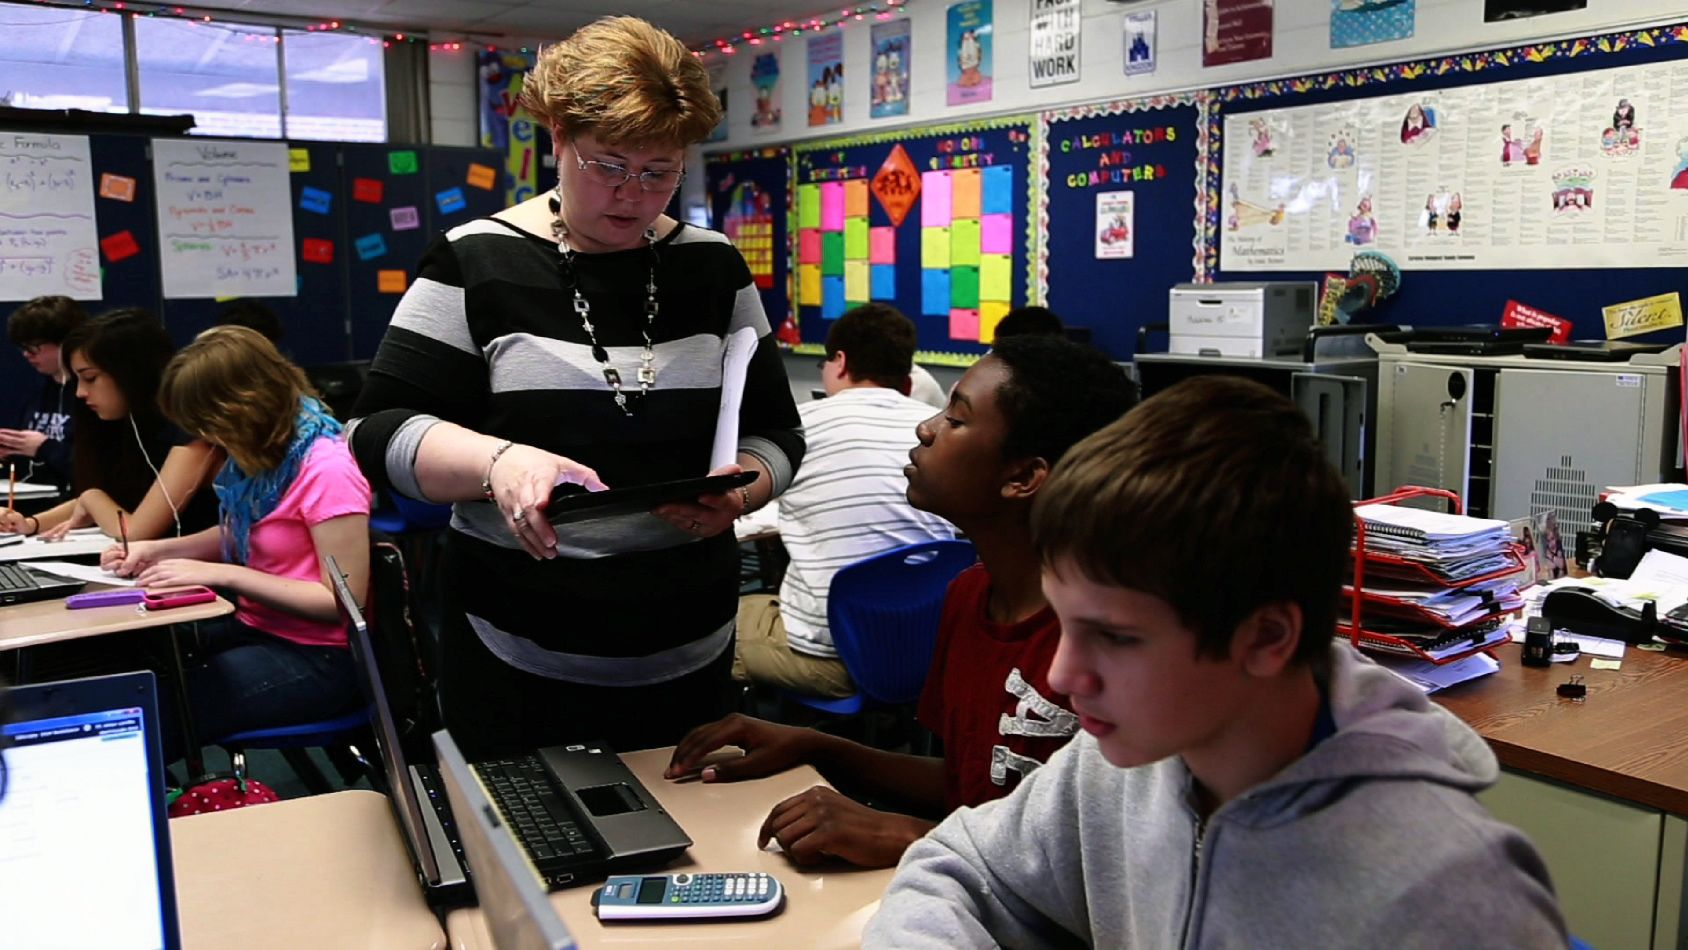 How a Single iPad Can Benefit a Whole Class